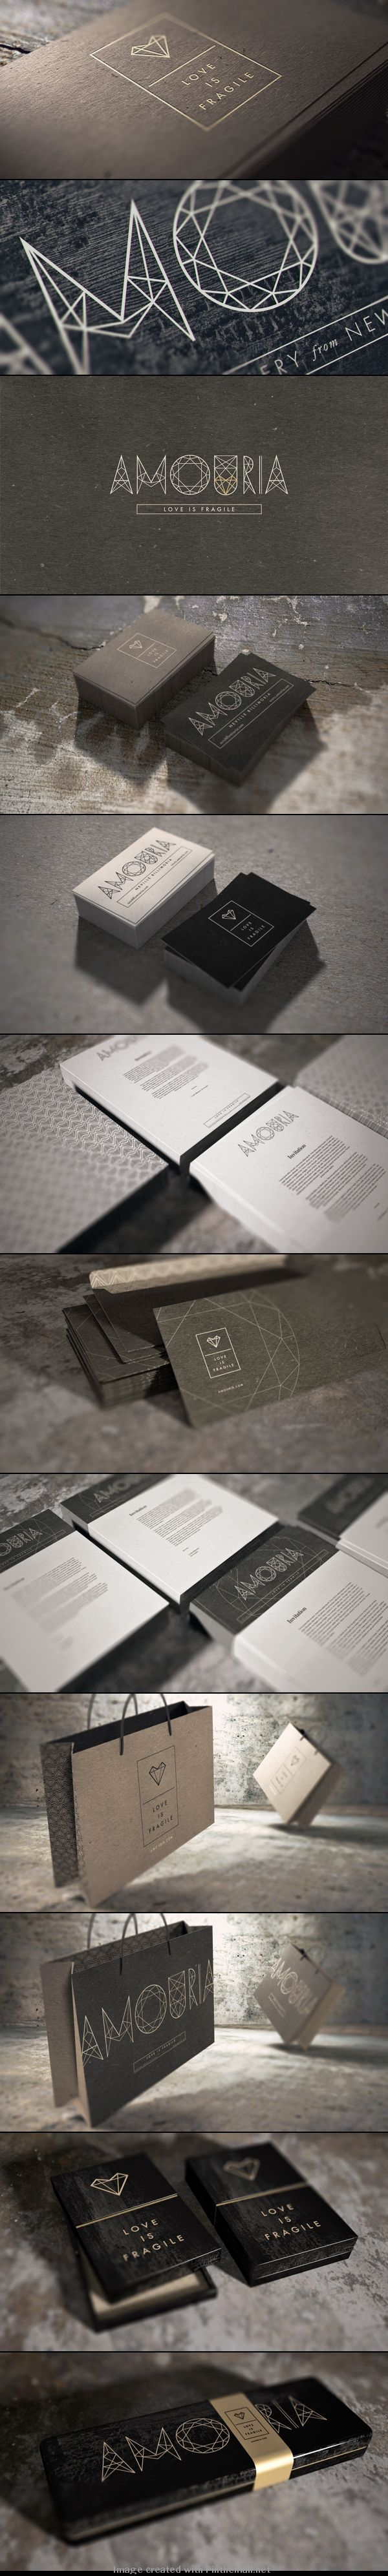 Amouria Jewelry branding, stationary and packaging design via Behance. #wbd #spc